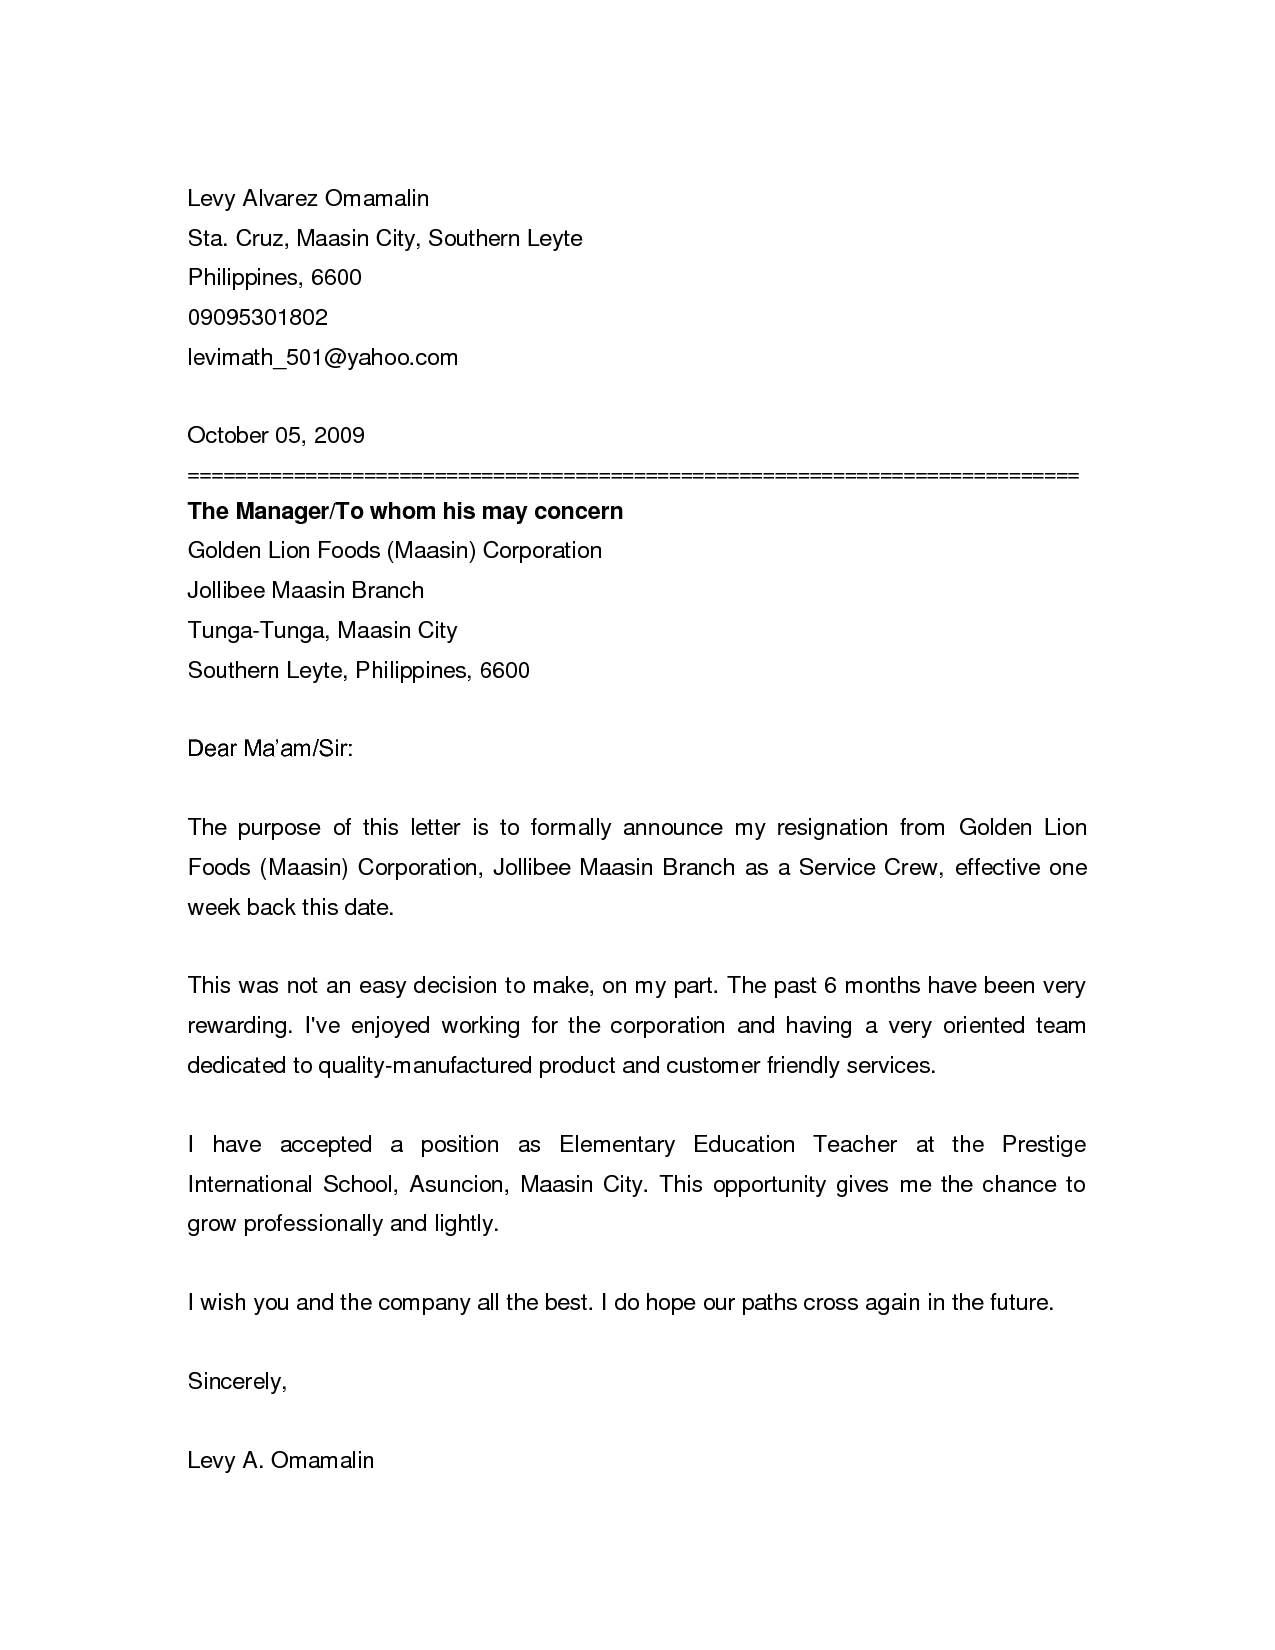 Resign Letter Format Of A Cover Letter For A Questionnaire